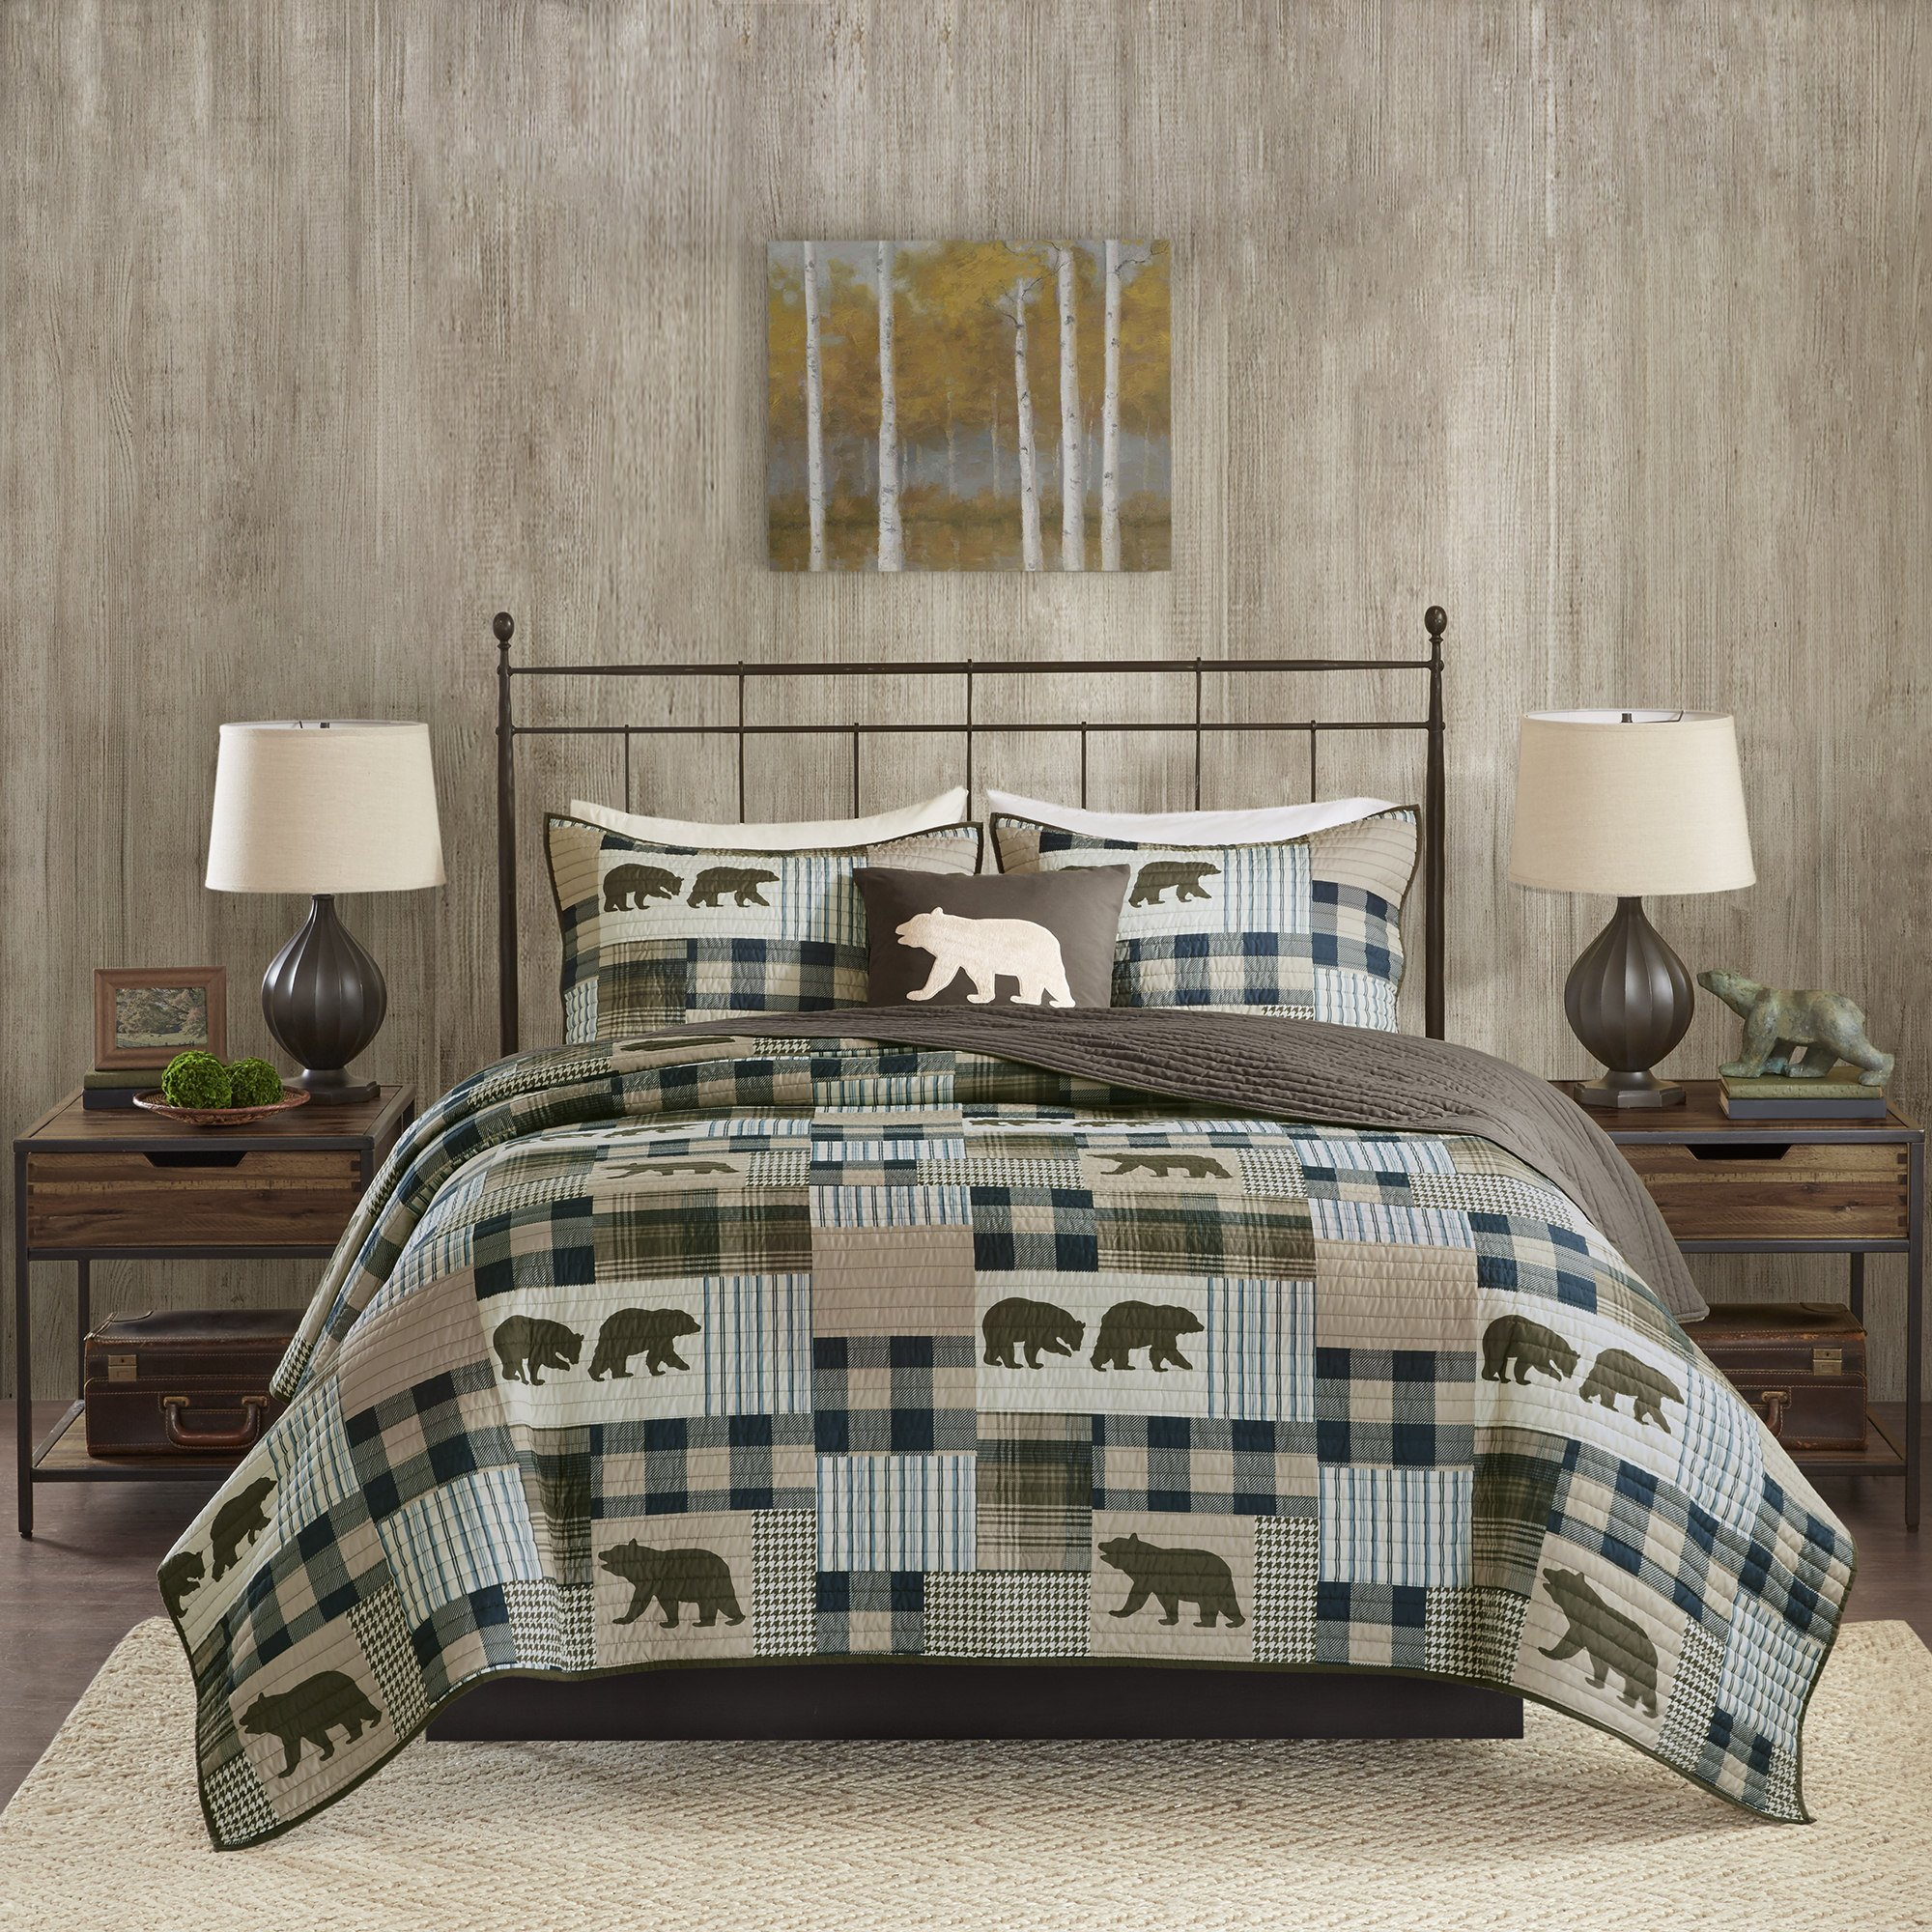 4 Piece Blue Brown Plaid KingCal King Quilt Set, Cabin Lodge Hunting Theme Bedding, Animal Print Bear Striped Checkered Pattern Patchwork Lumberjack Rugby Stripes Bears Motif Reversible, Polyester